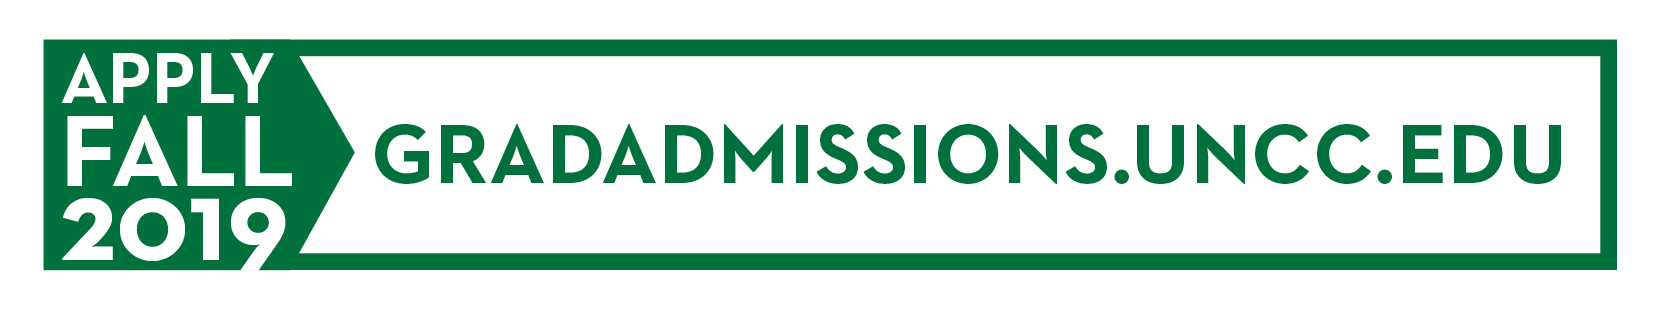 Apply Fall 2019: gradadmissions.uncc.edu